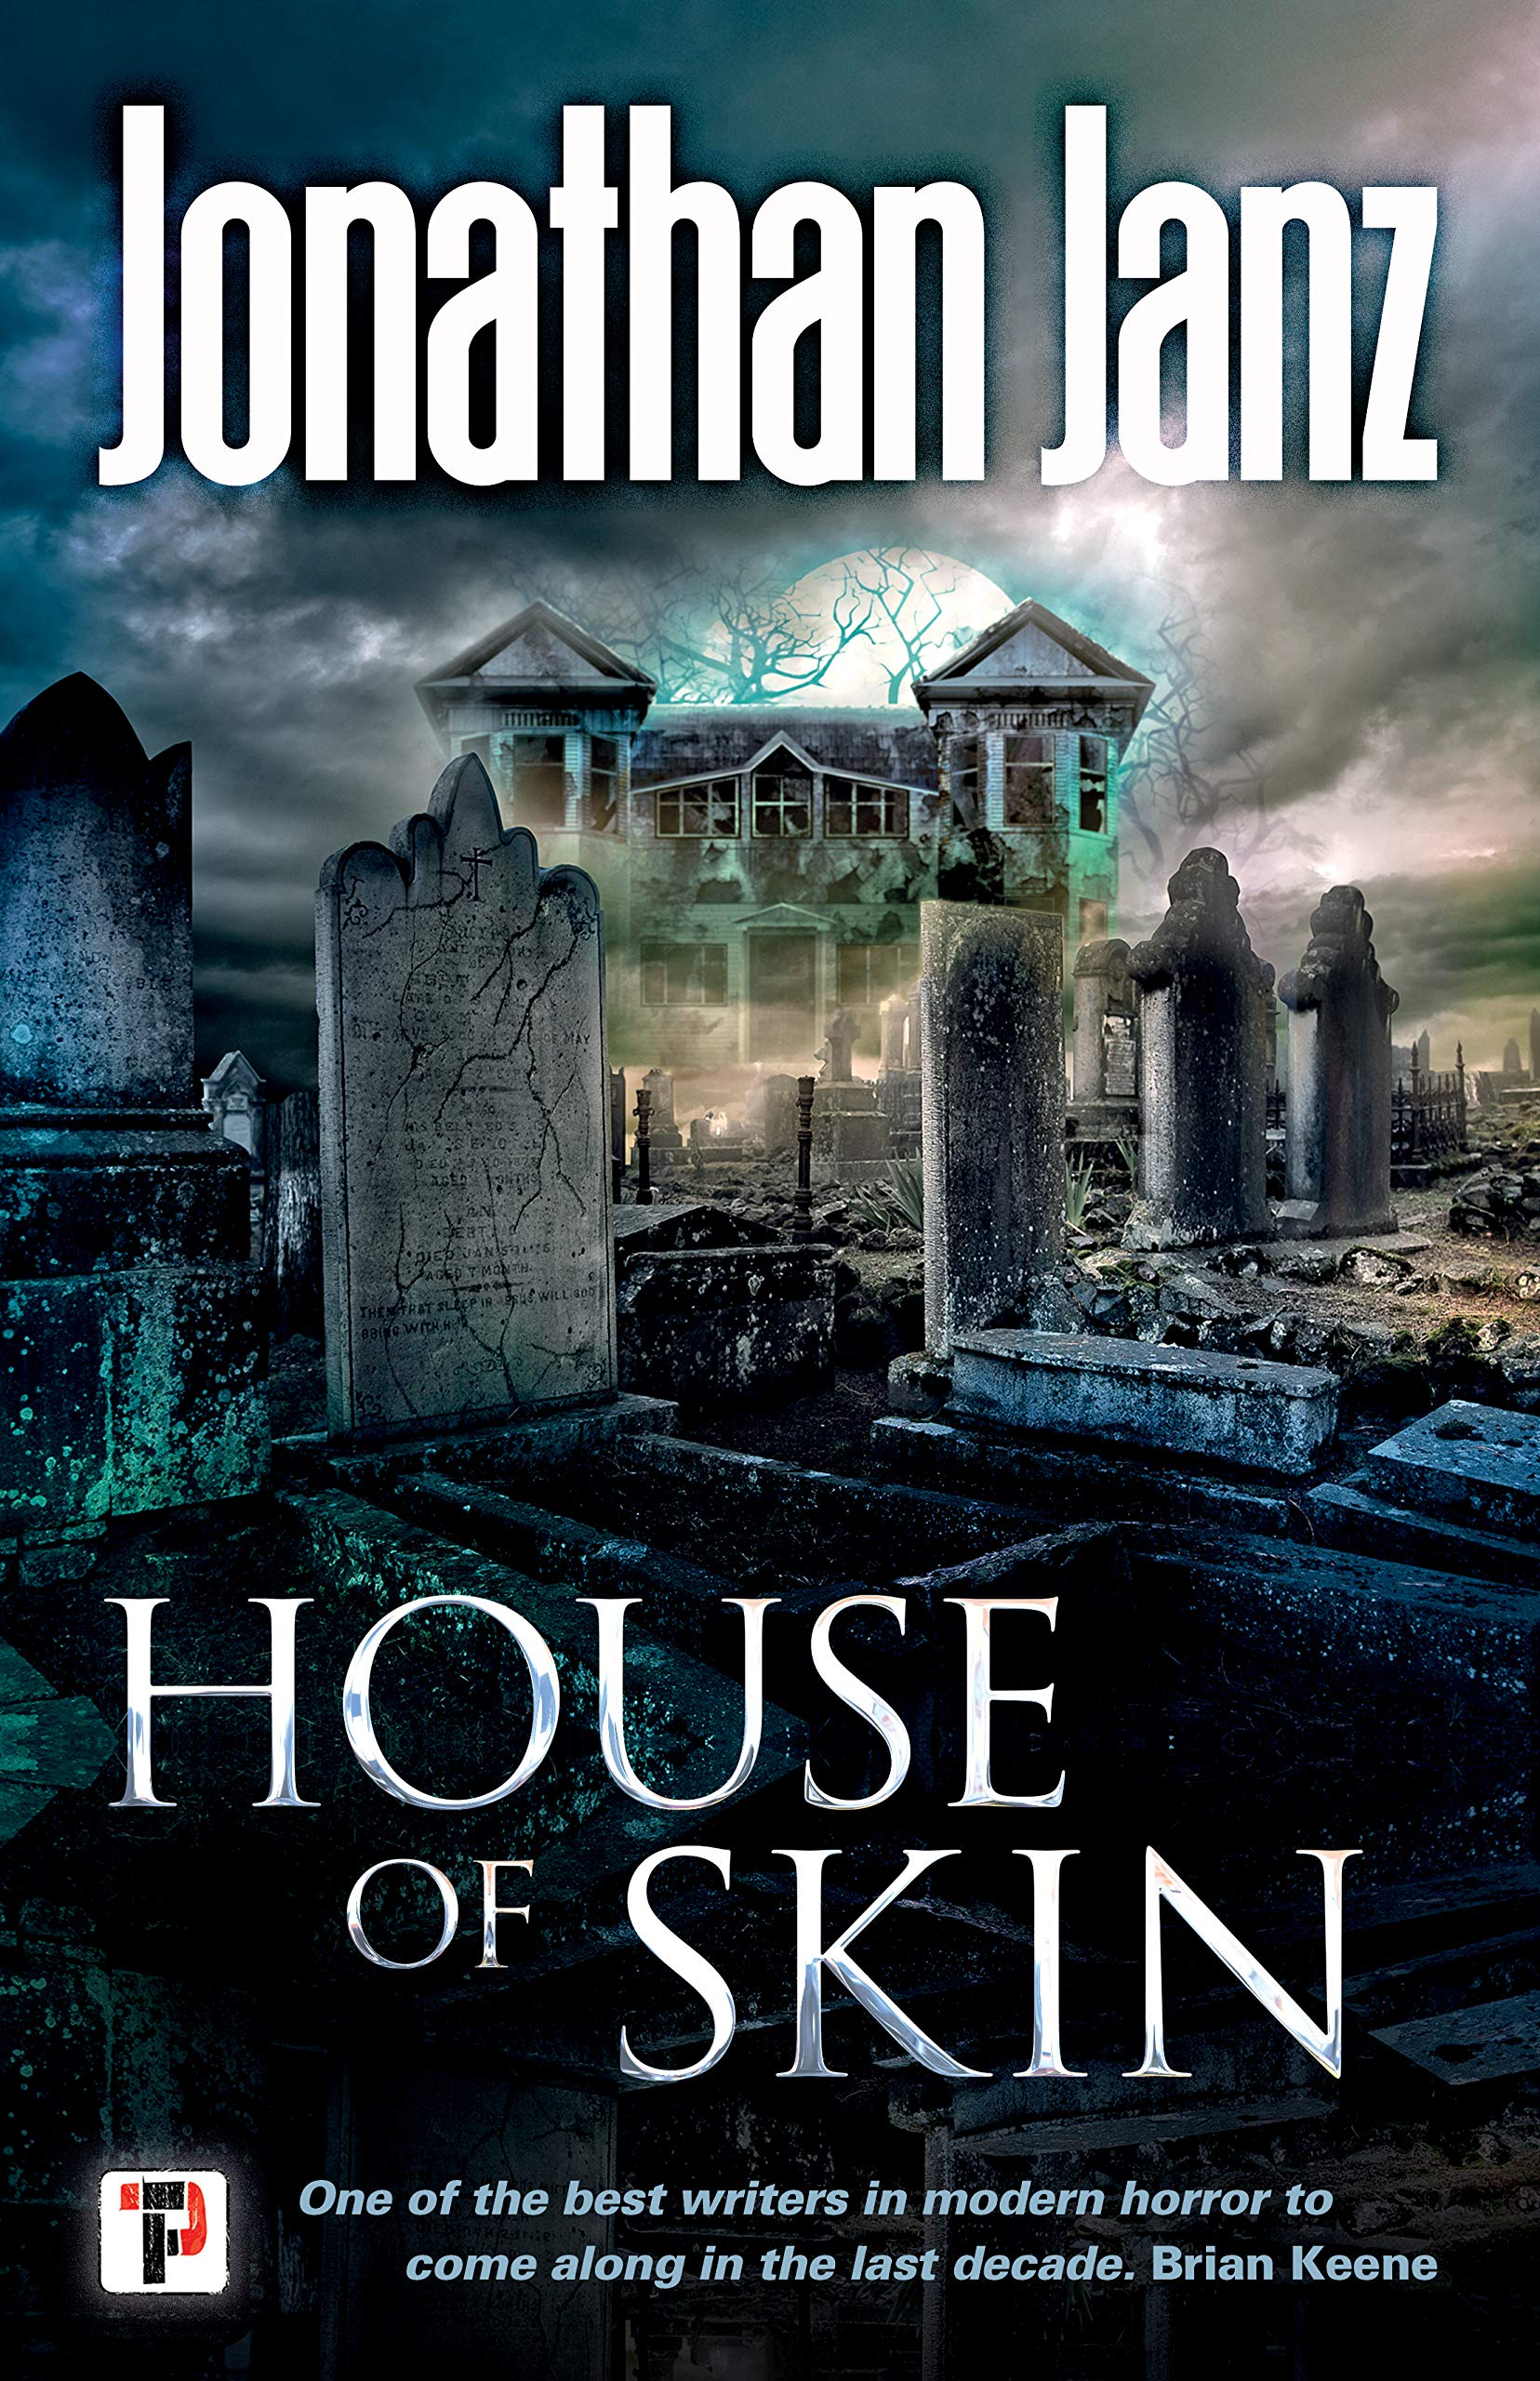 House of Skin_Jonathan Janz.jpg